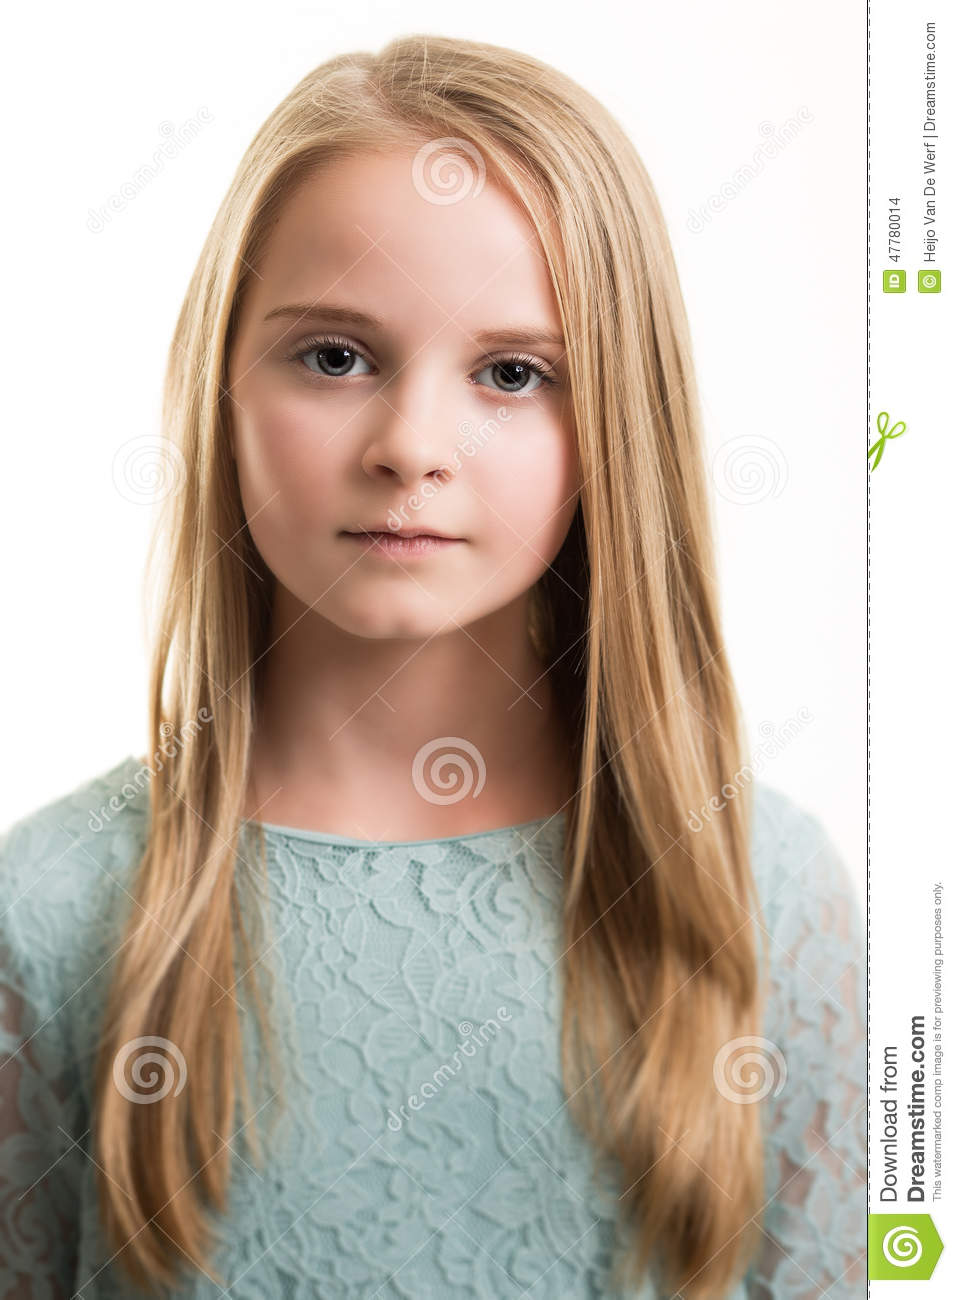 Blue Eyed Young Girl In Turquoise Top Isolated Stock Photo